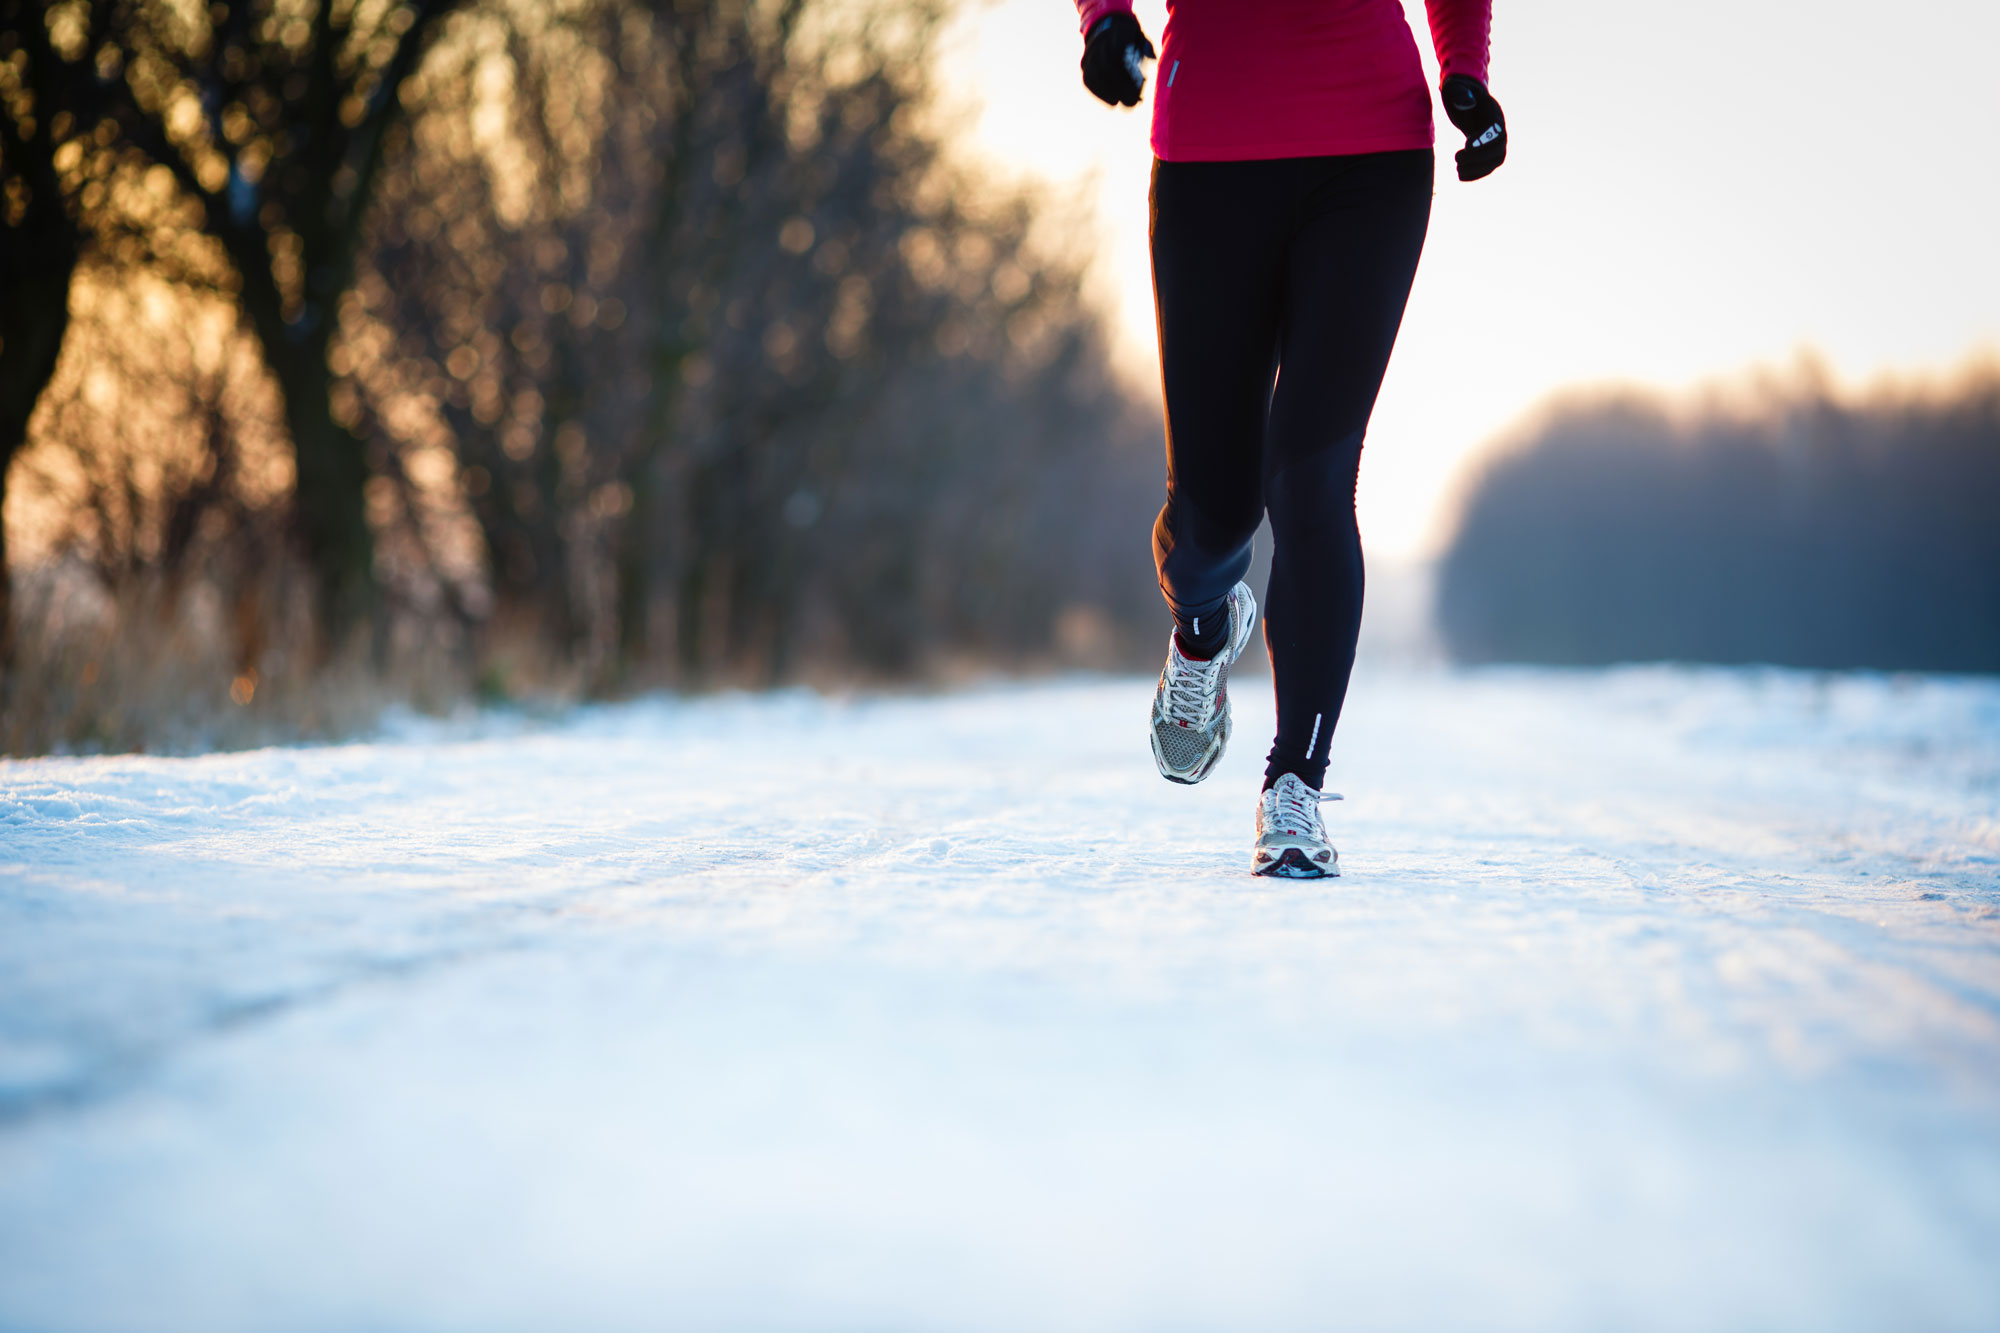 A runner jogging through snow